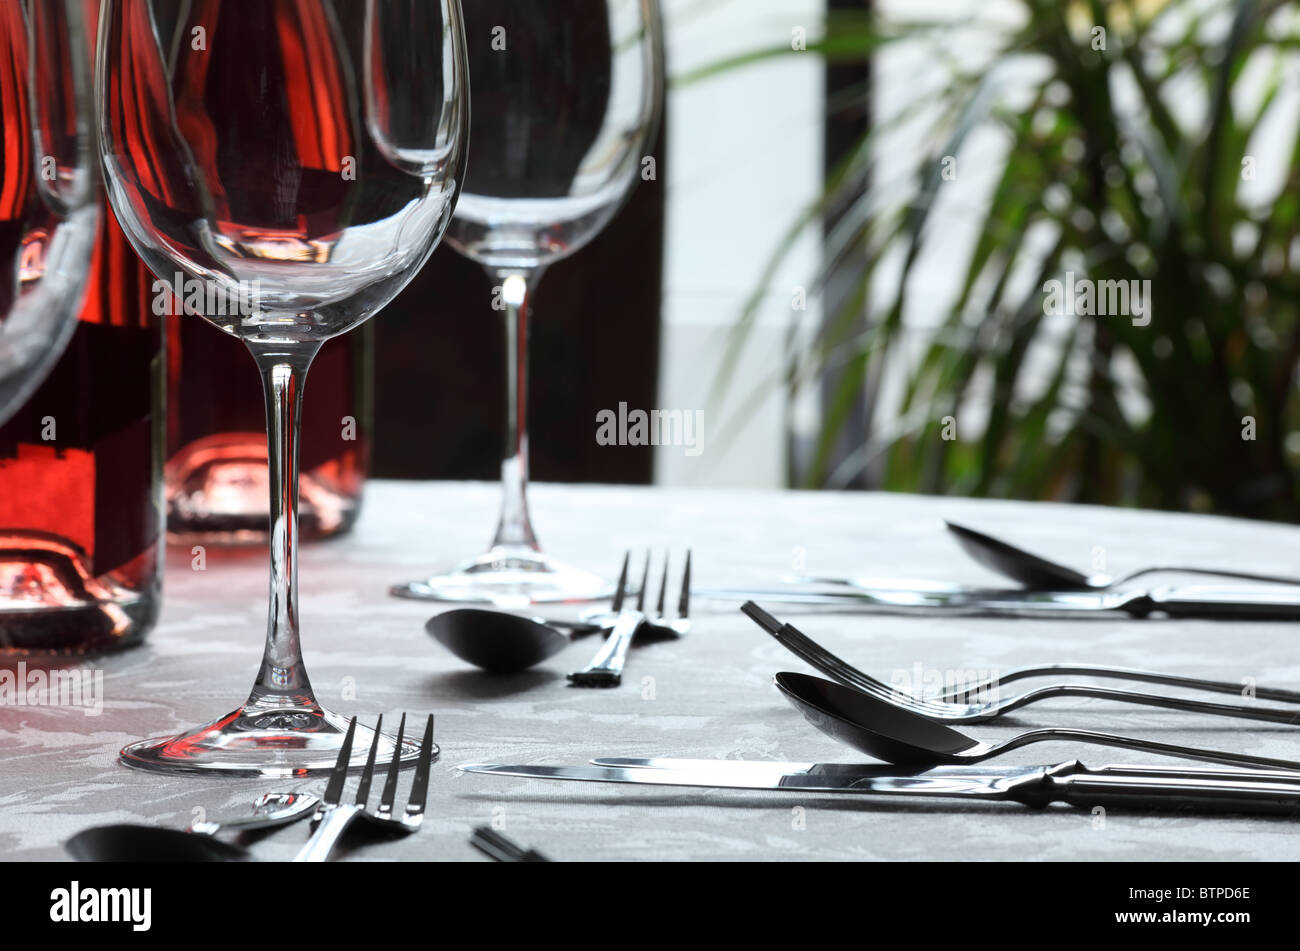 Wine glasses and cutlery in restaurant - Stock Image